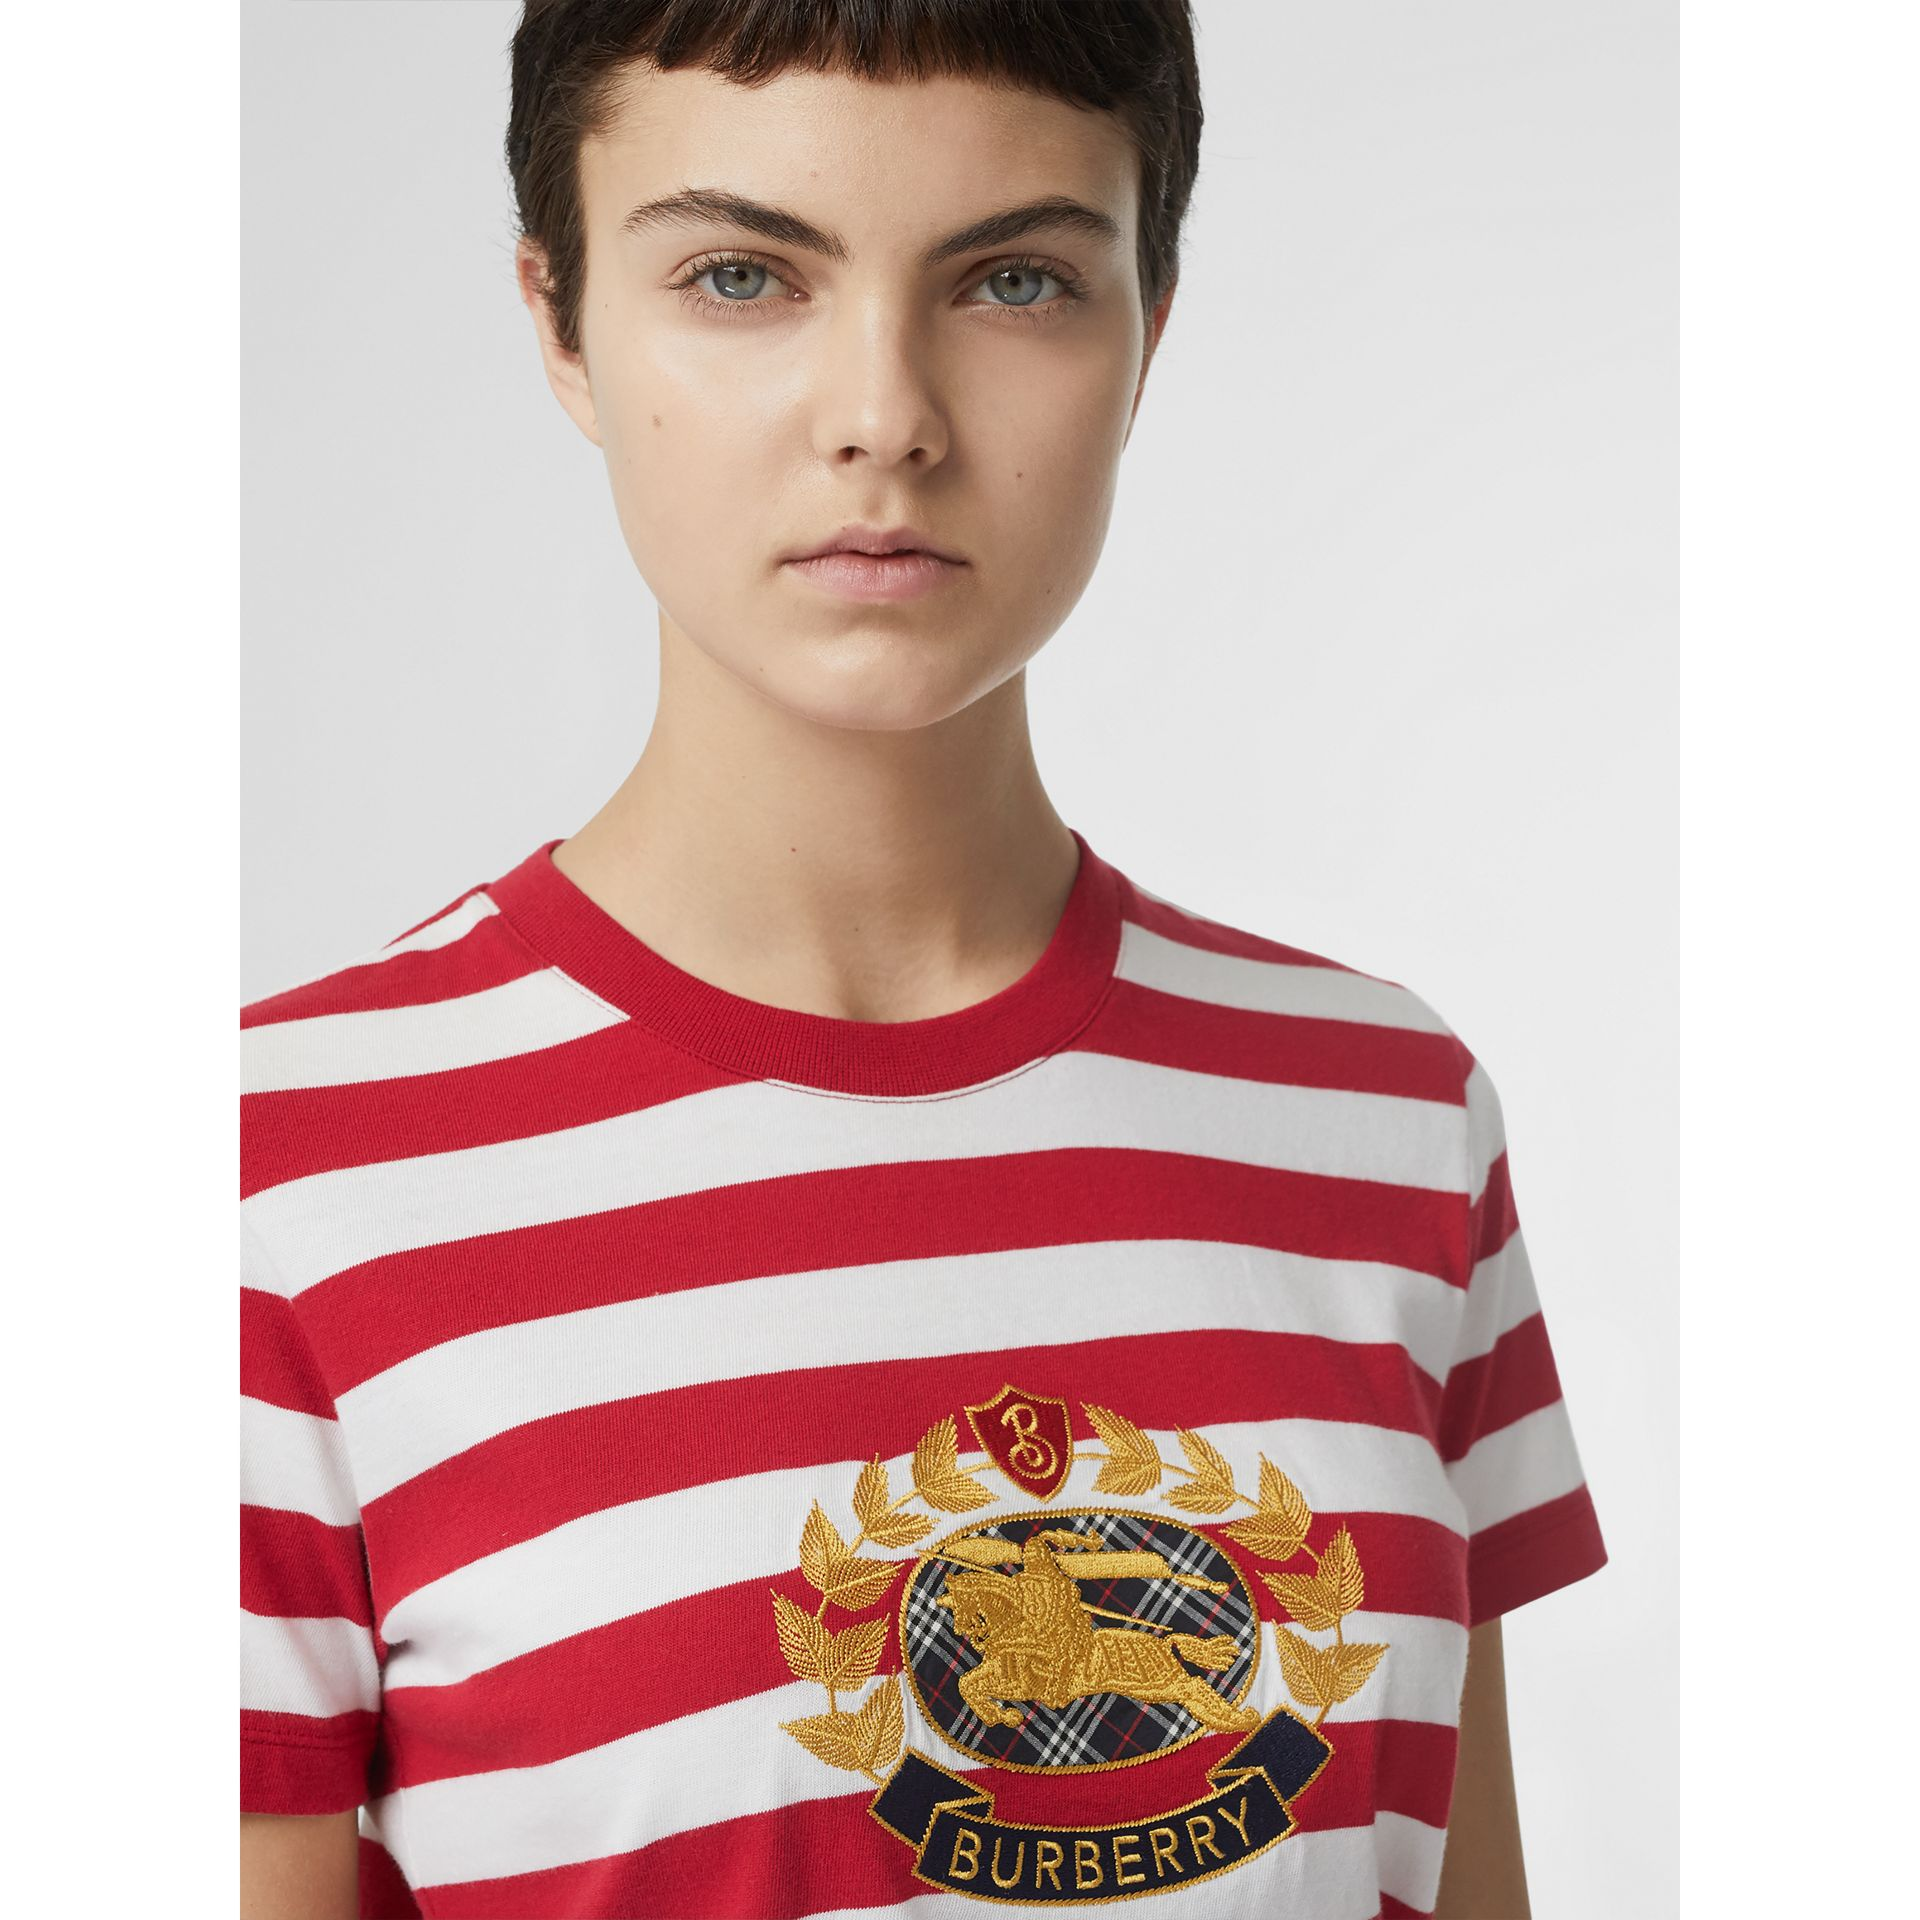 Crest Appliqué Striped Cotton T-shirt in Cadmium Red - Women | Burberry Canada - gallery image 1